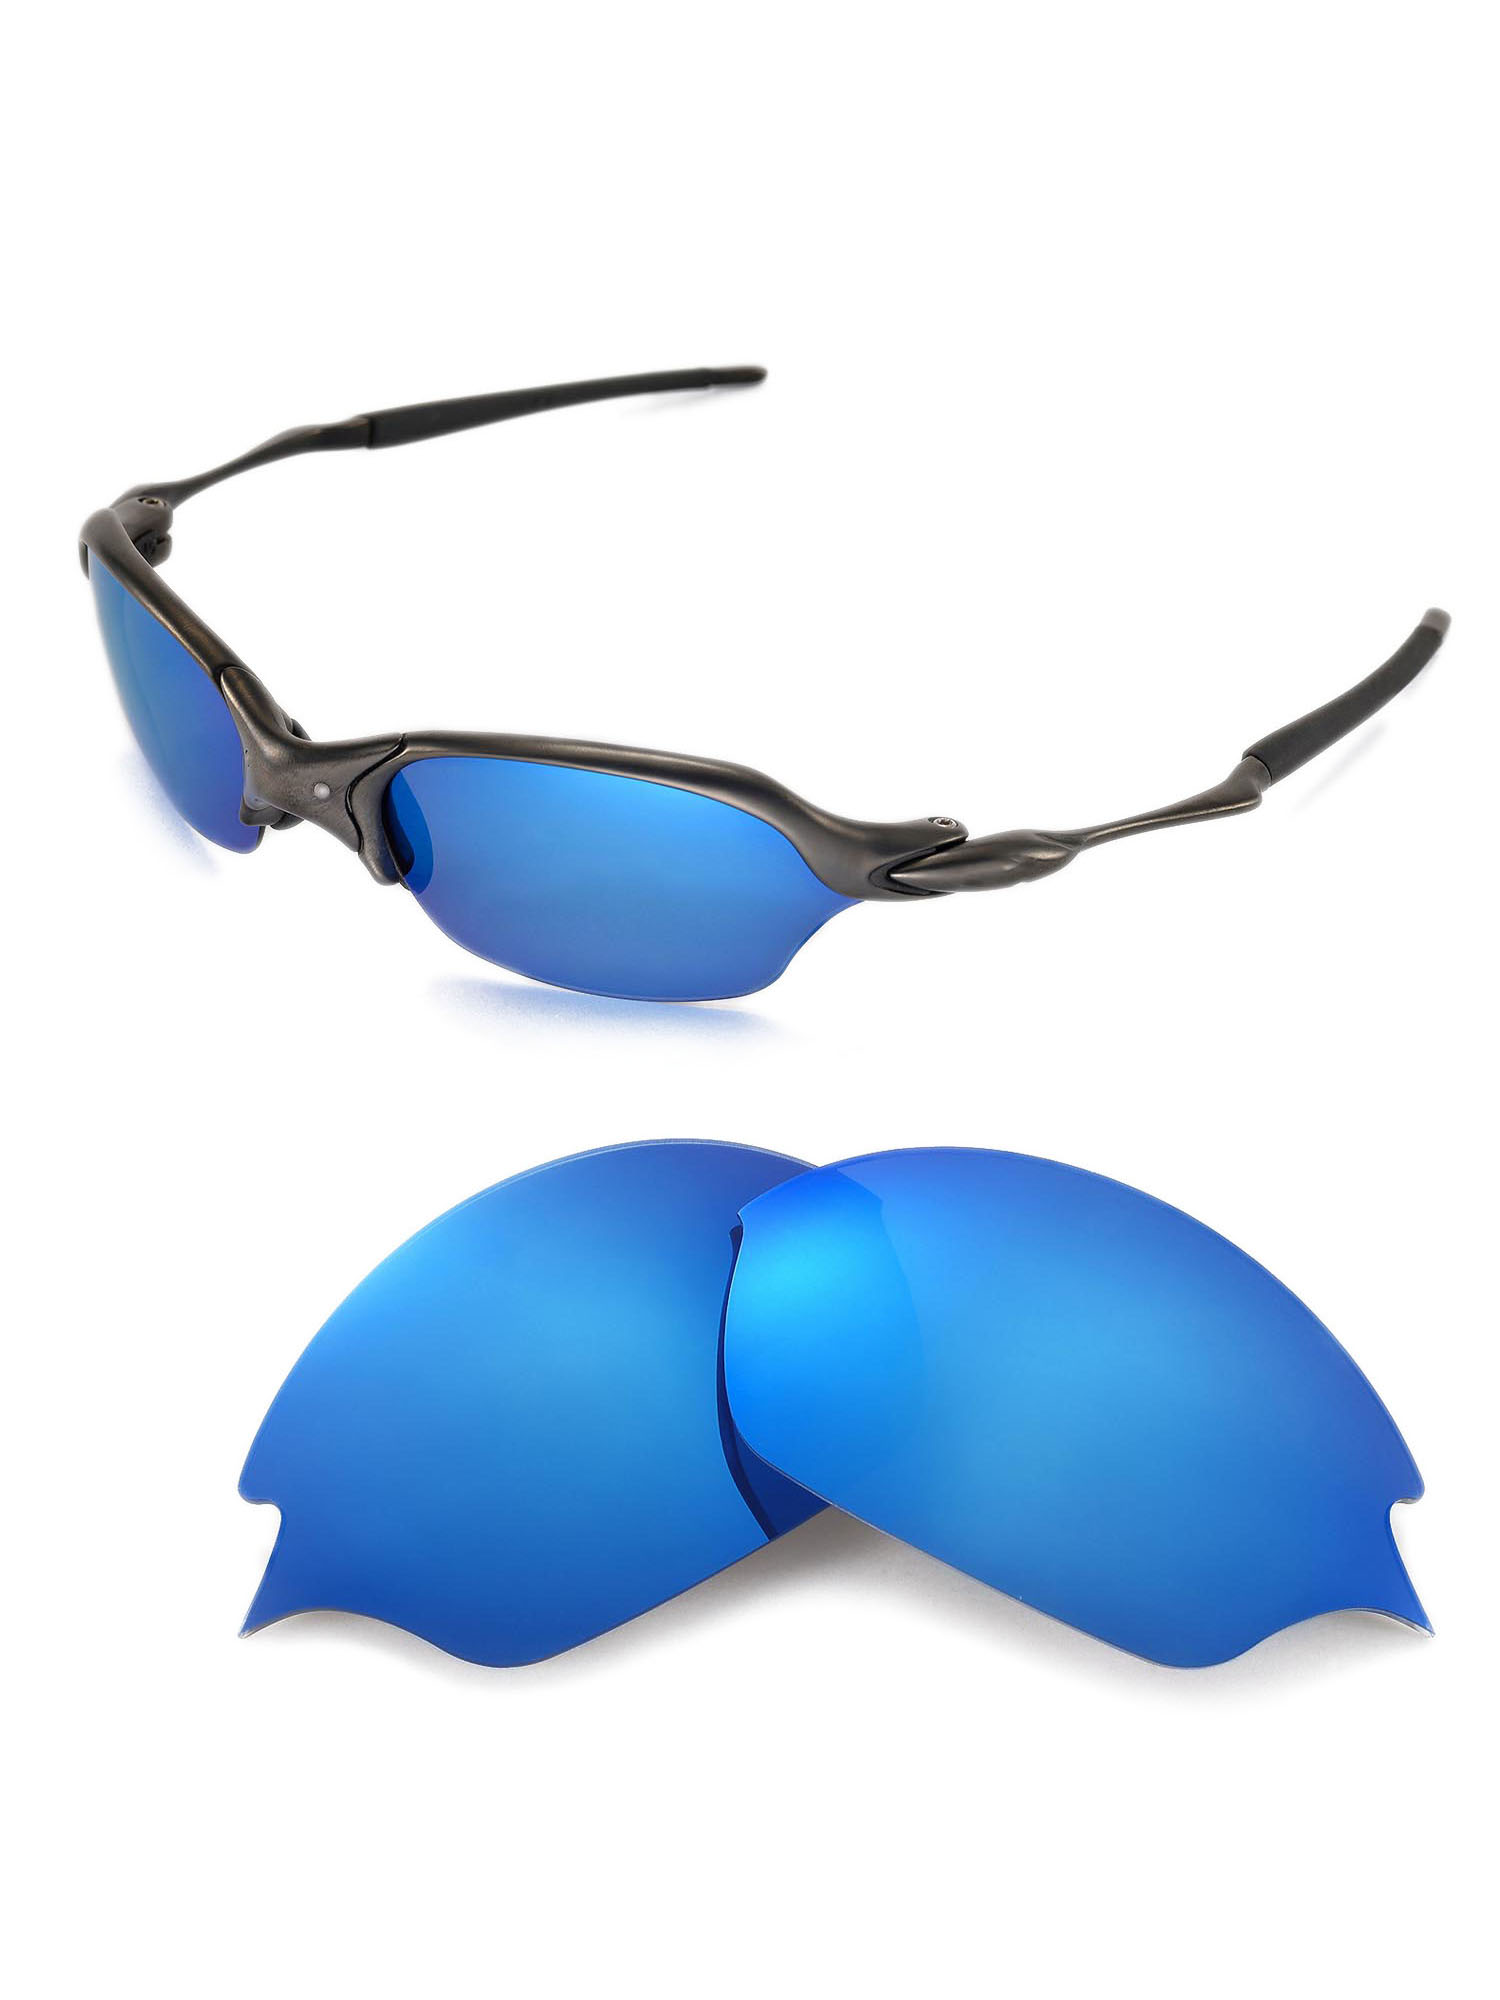 13f66c6bc1d Walleva - Walleva Emerald Polarized Replacement Lenses for Oakley Romeo 2.0  Sunglasses - Walmart.com